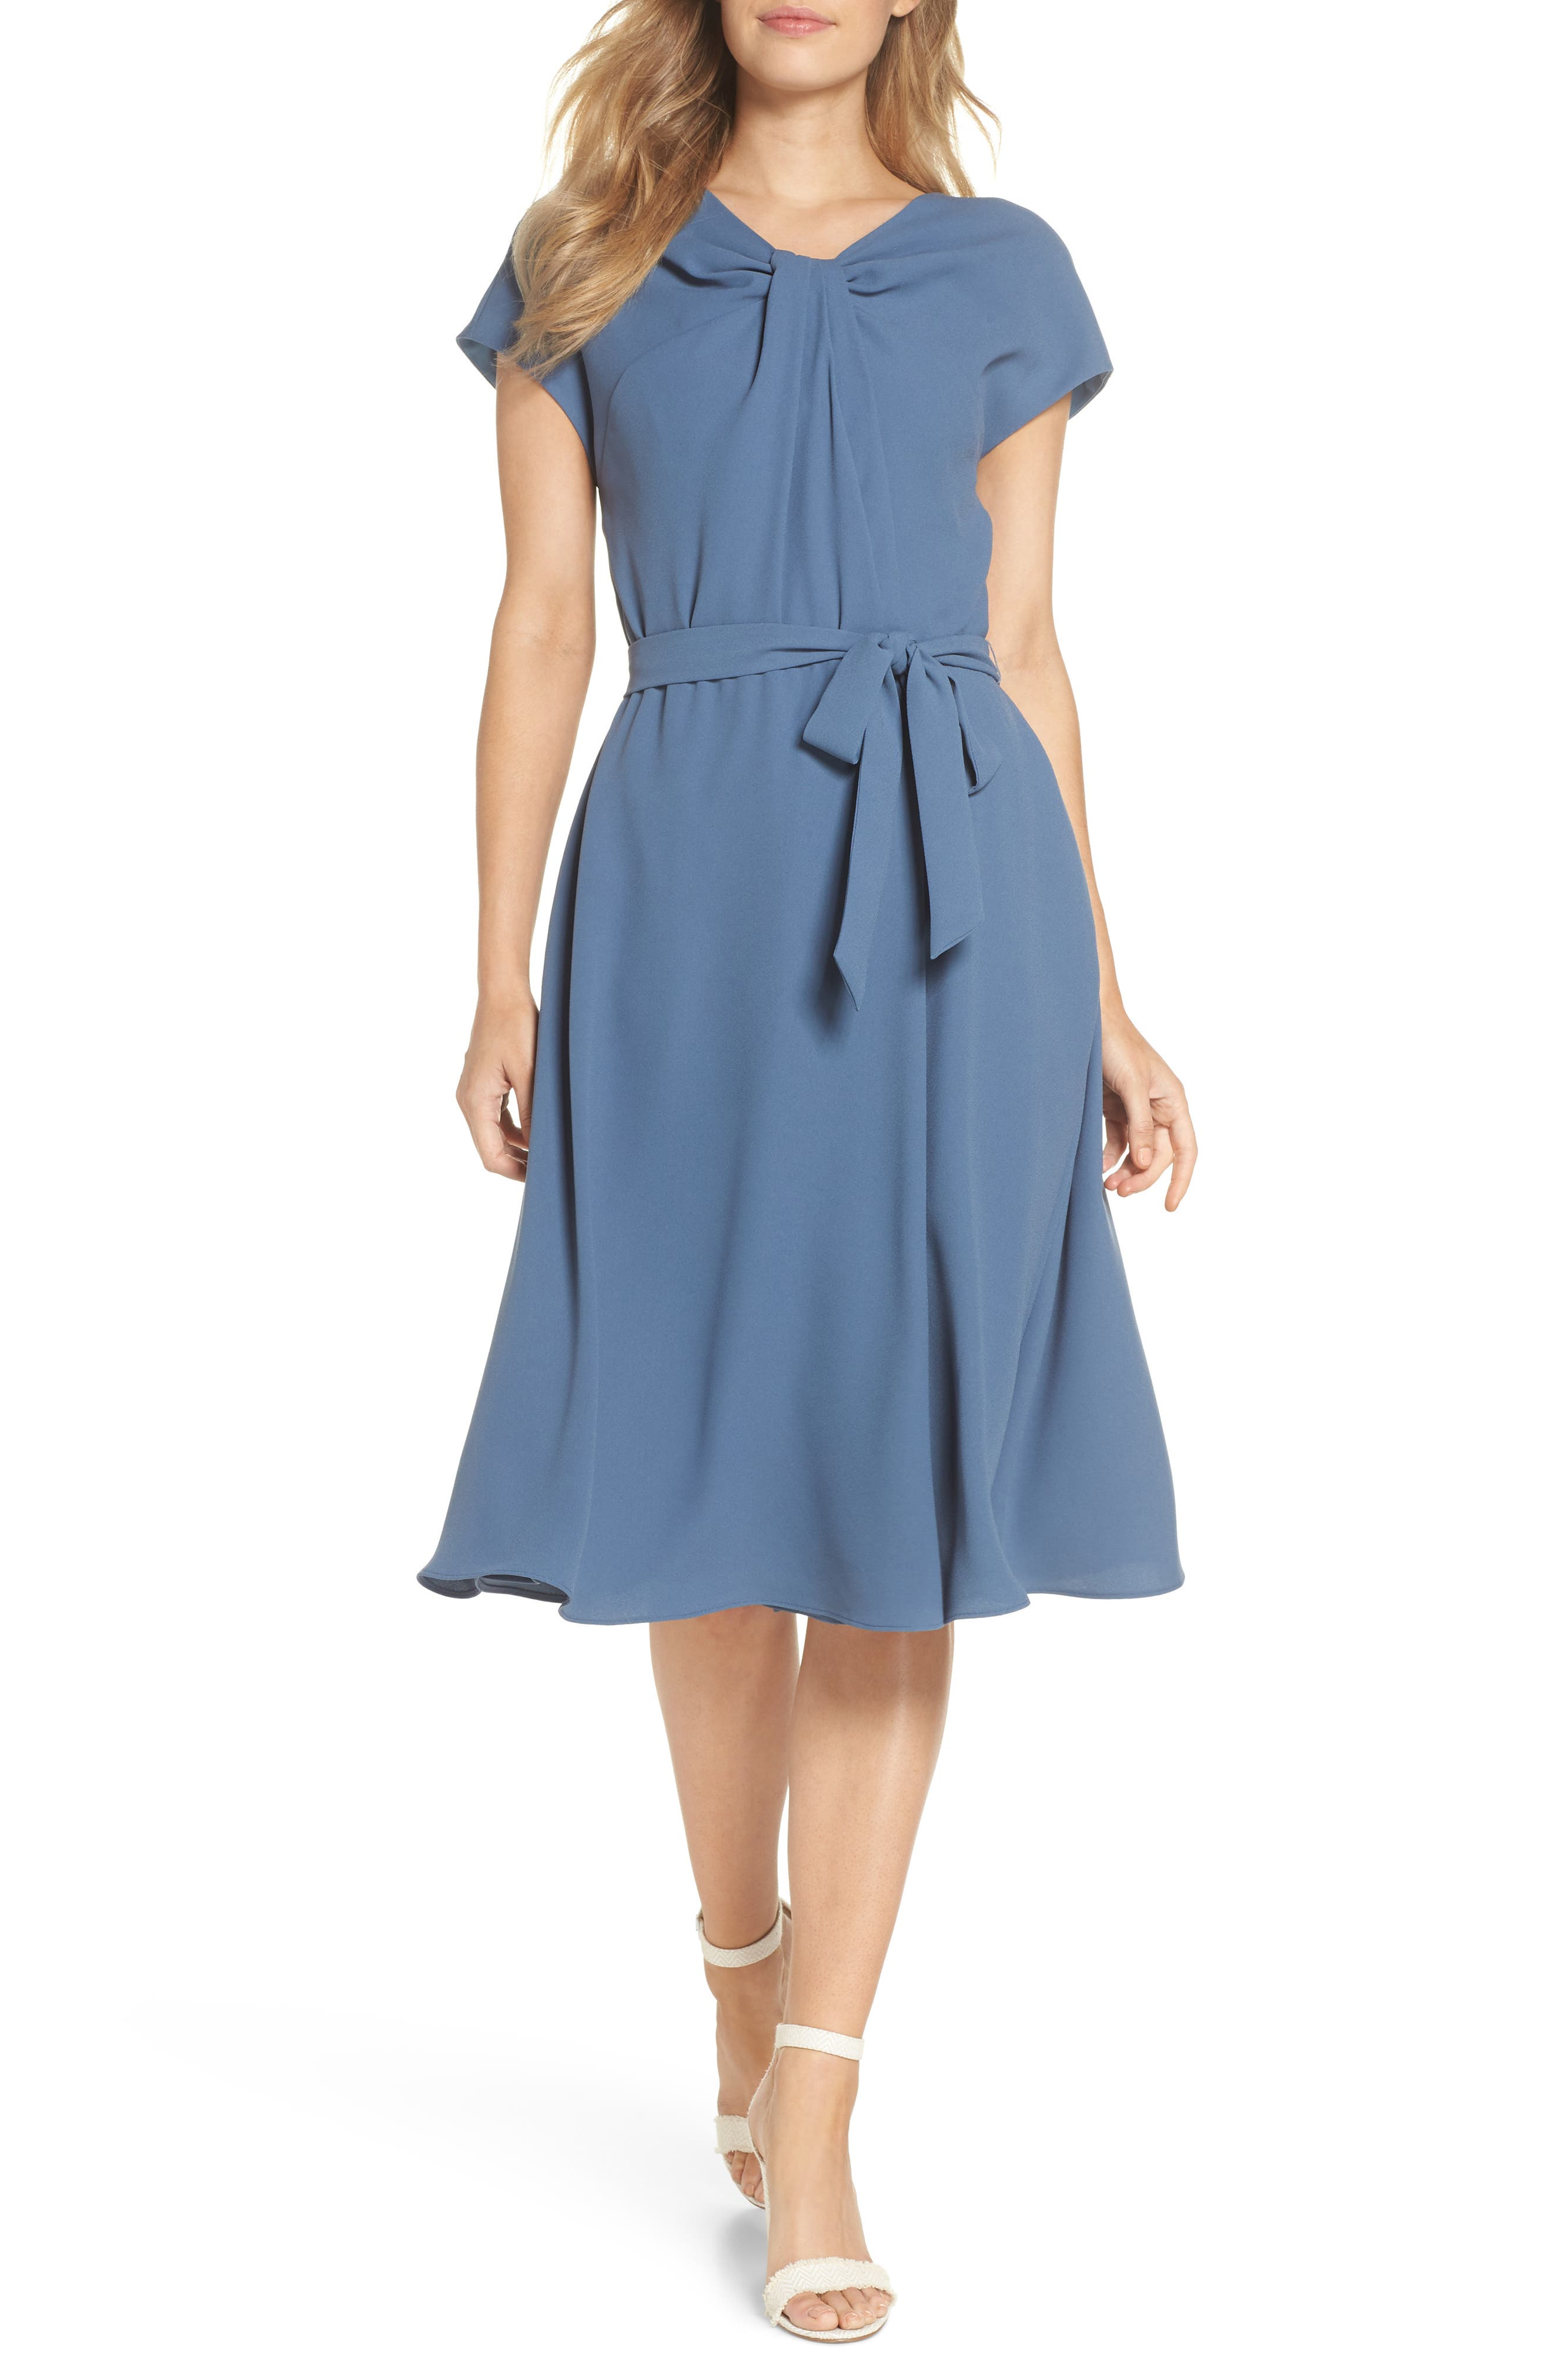 1930s Day Dresses, Afternoon Dresses History Womens Gal Meets Glam Collection Vivian Twist Neck Fit  Flare Dress $158.00 AT vintagedancer.com